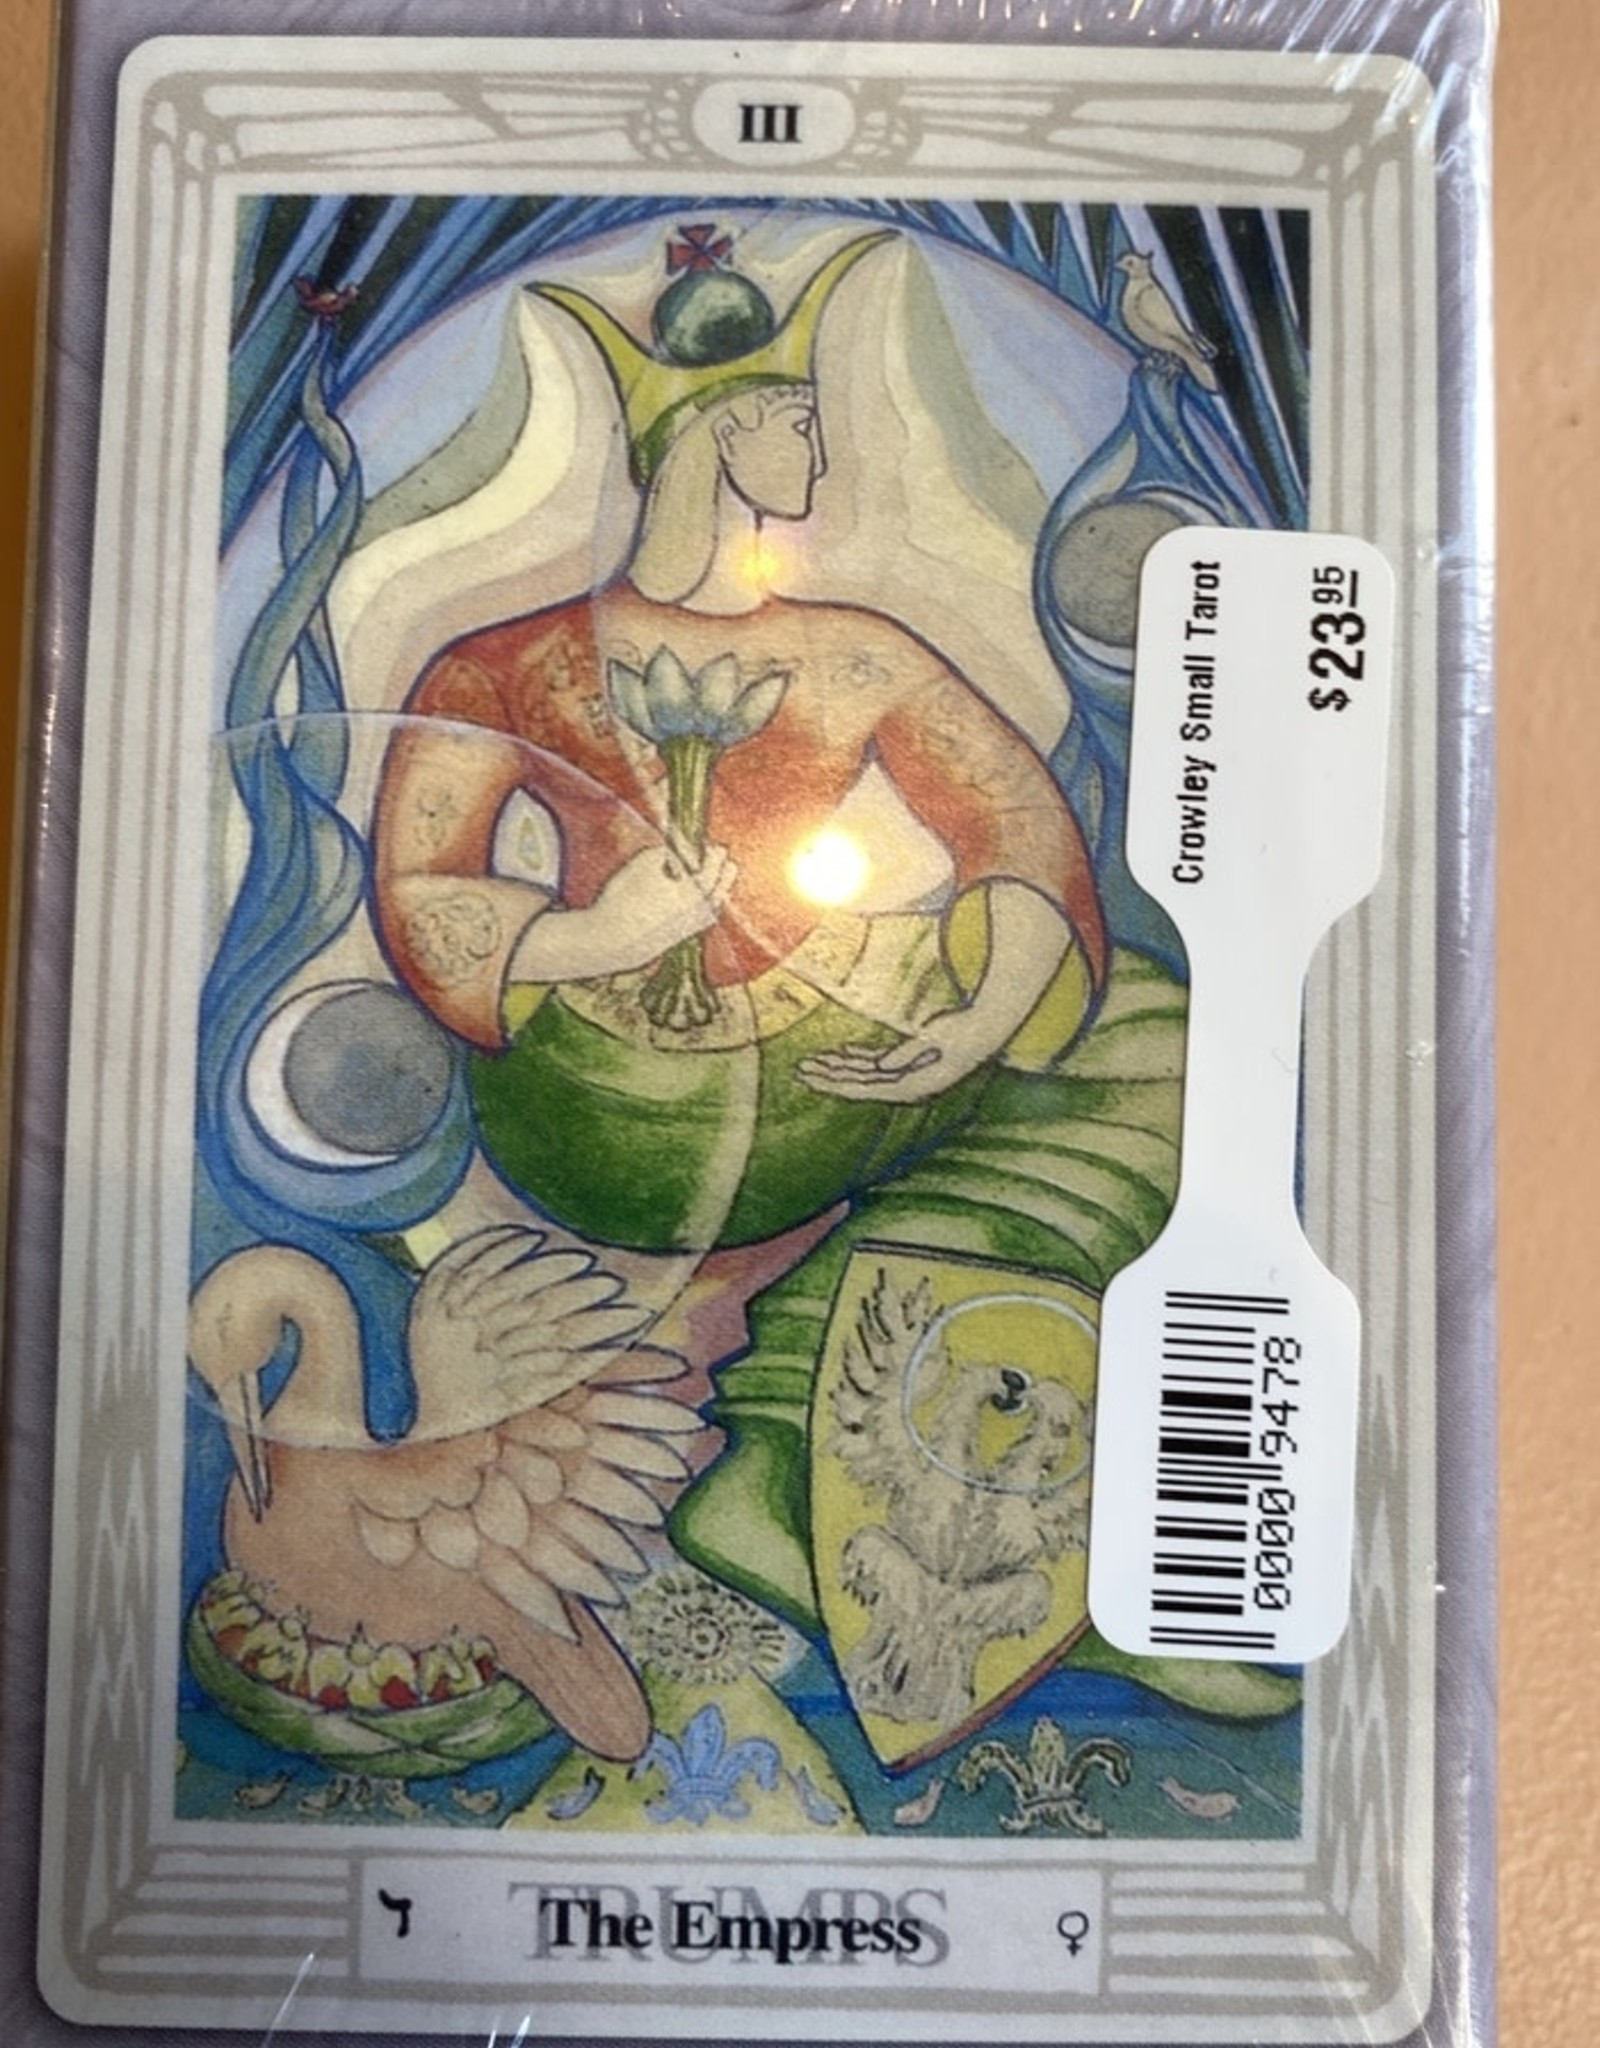 US Games System Inc Crowley Small Tarot